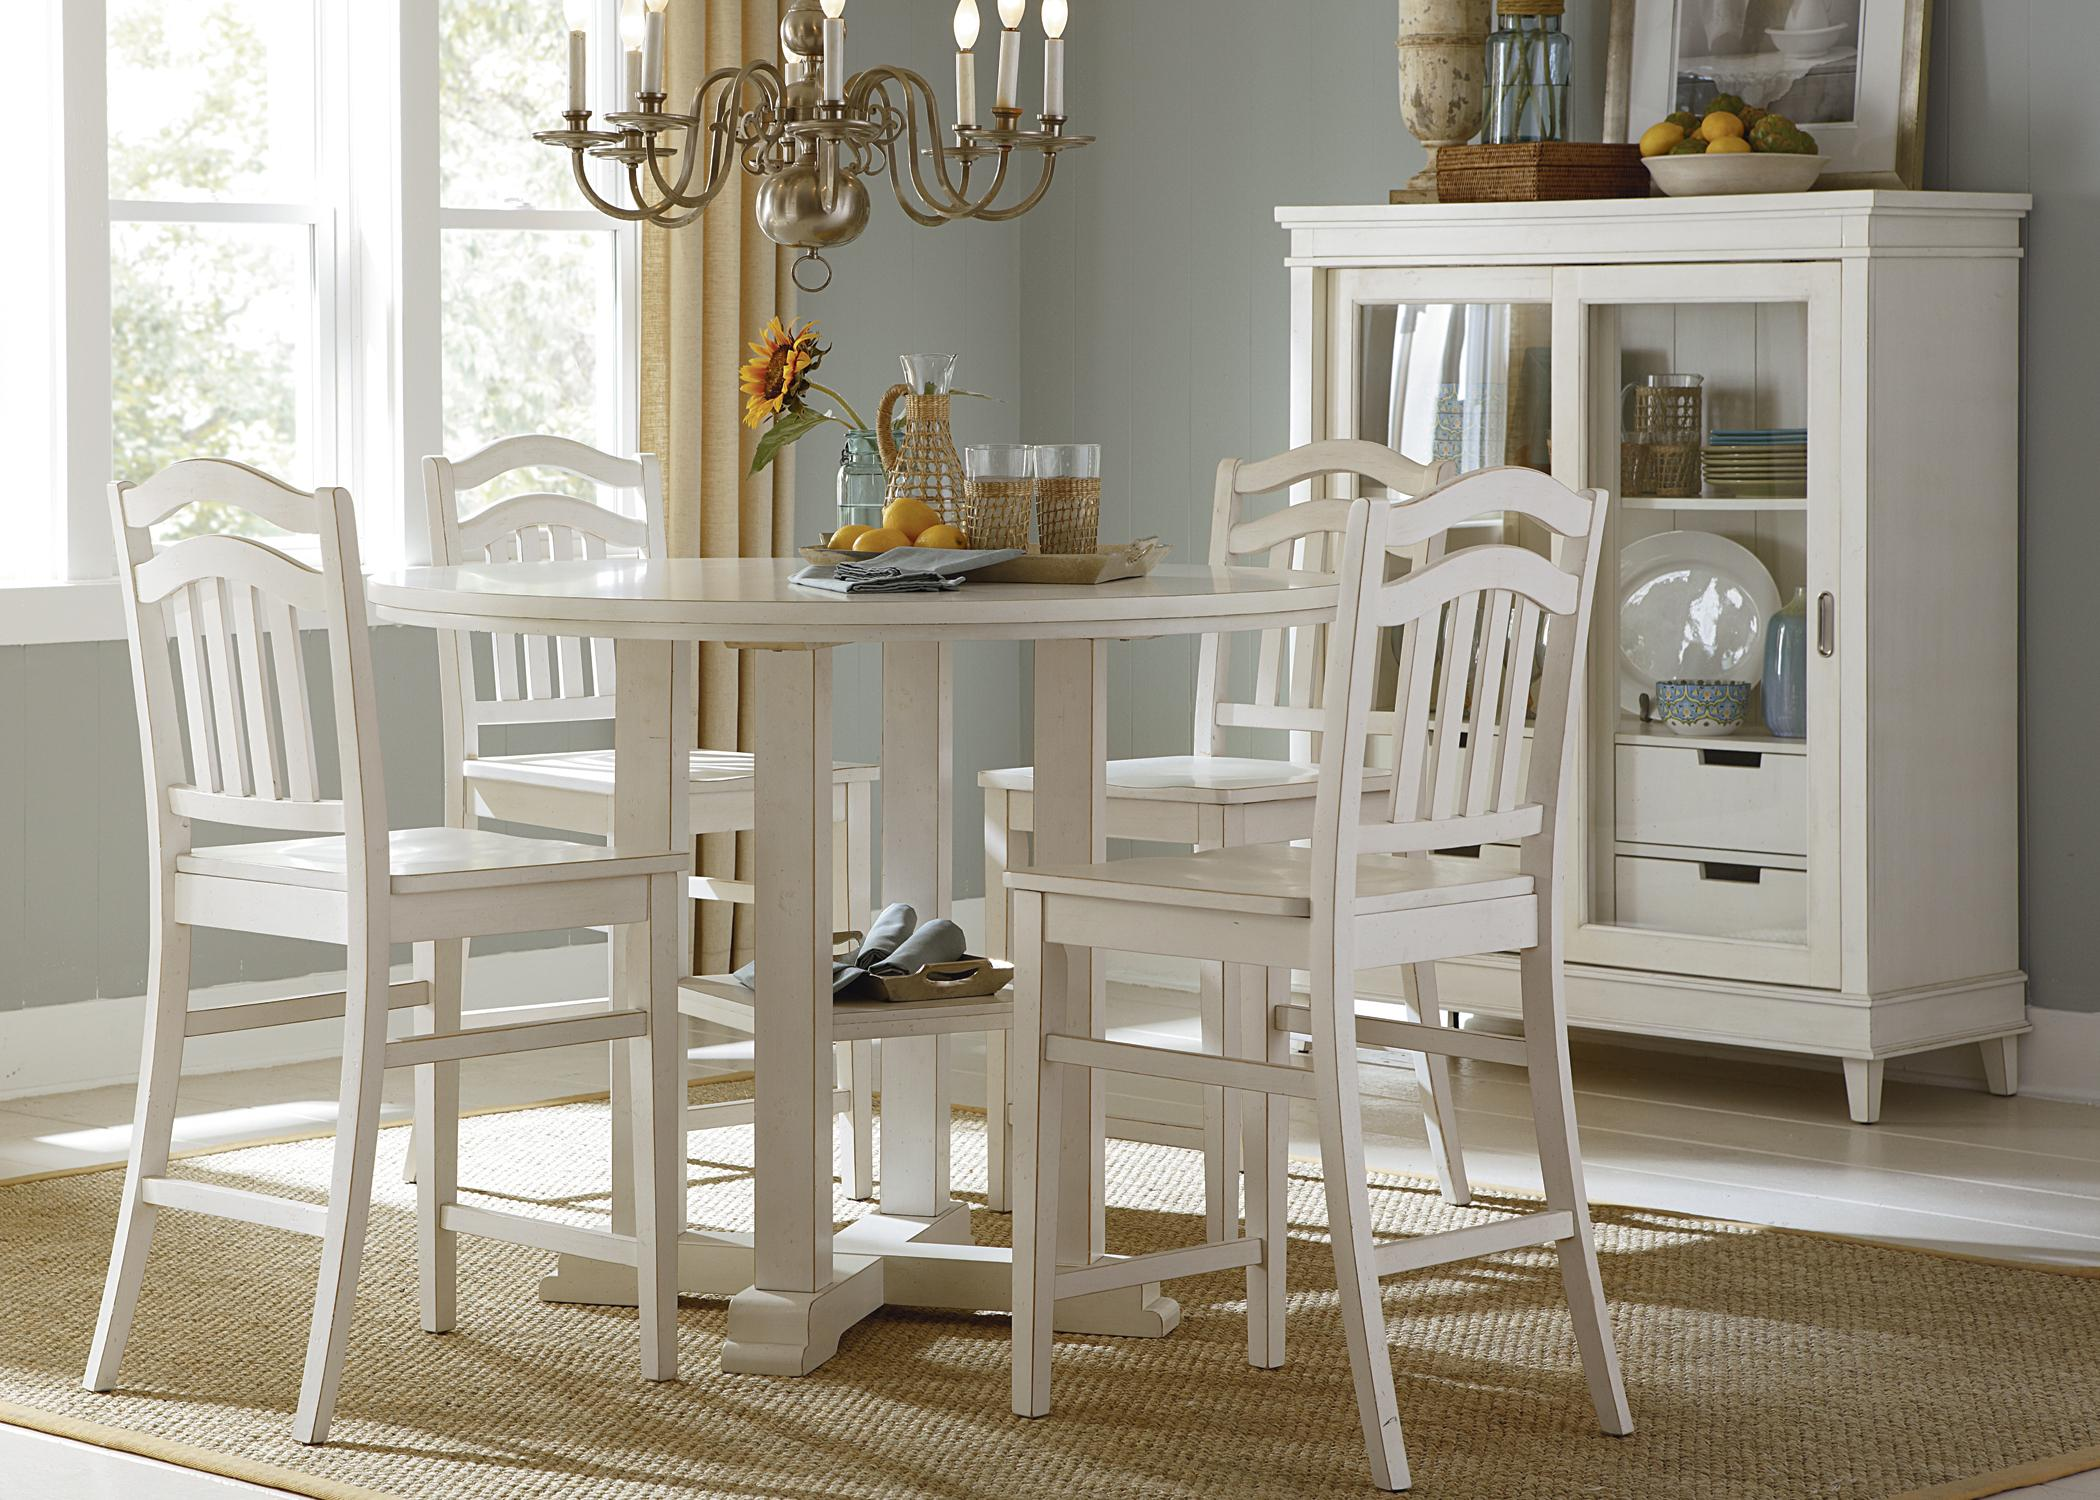 White and black dining room table - Liberty Furniture Summerhill Six Piece Rectangular Table Bench And Chair Dining Set Wayside Furniture Table Chair Set With Bench